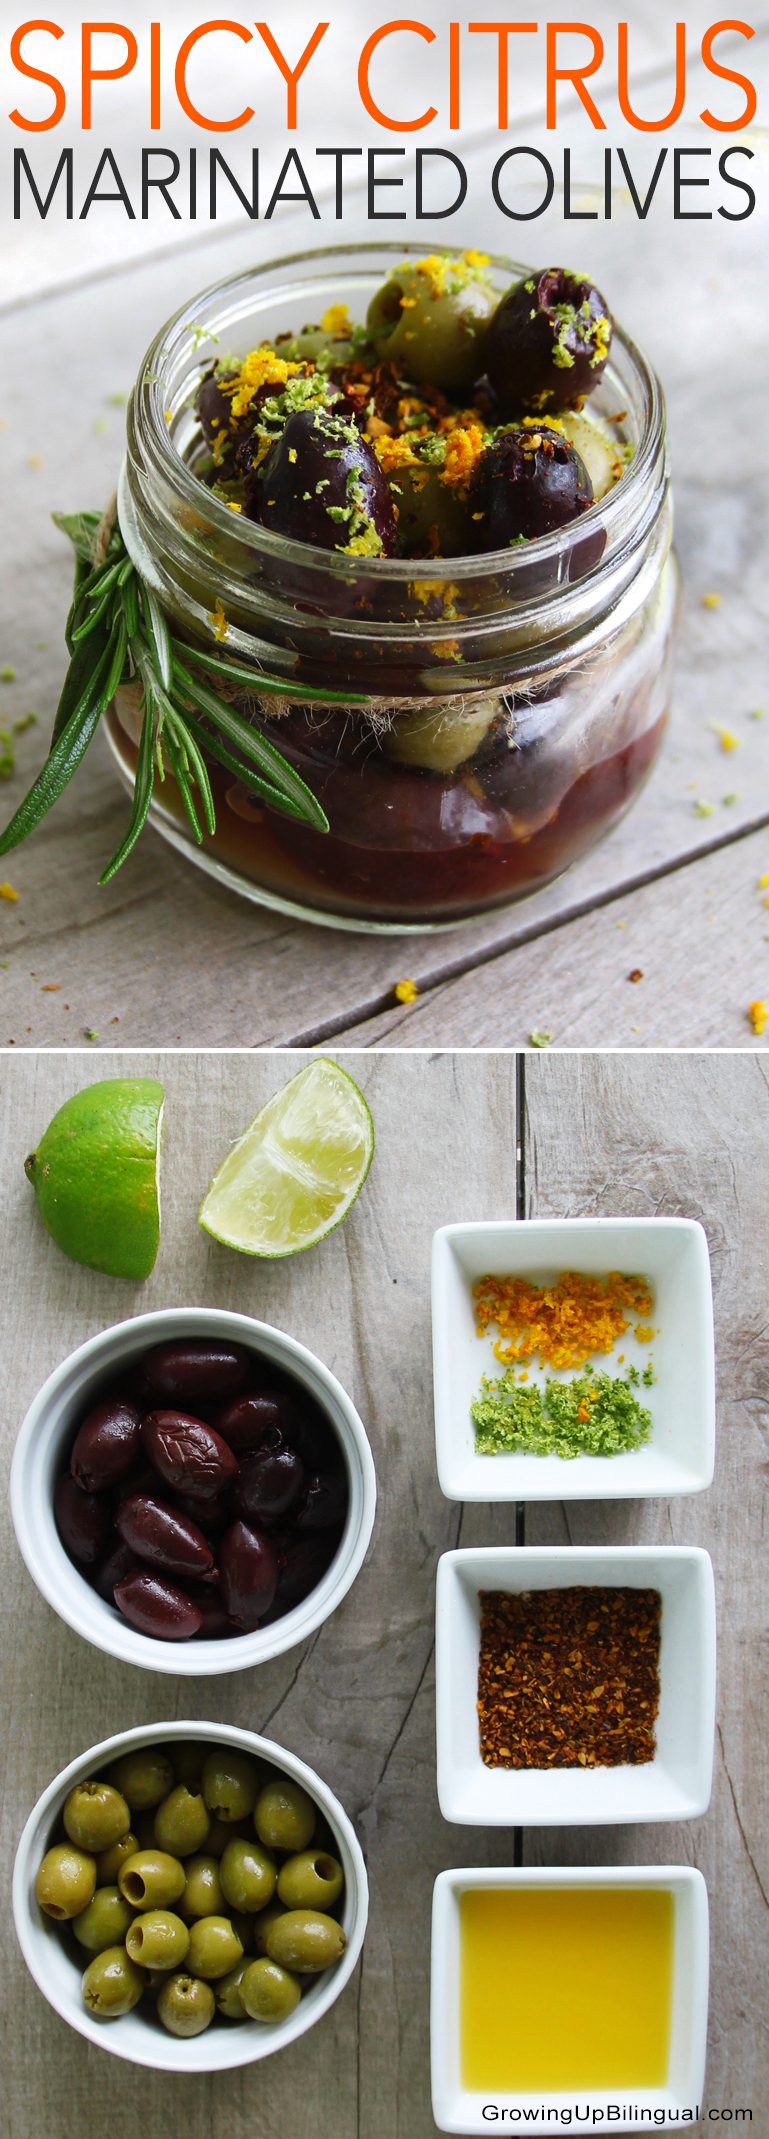 ... .com/2016/latino-parenting/spicy-citrus-marinated-olives